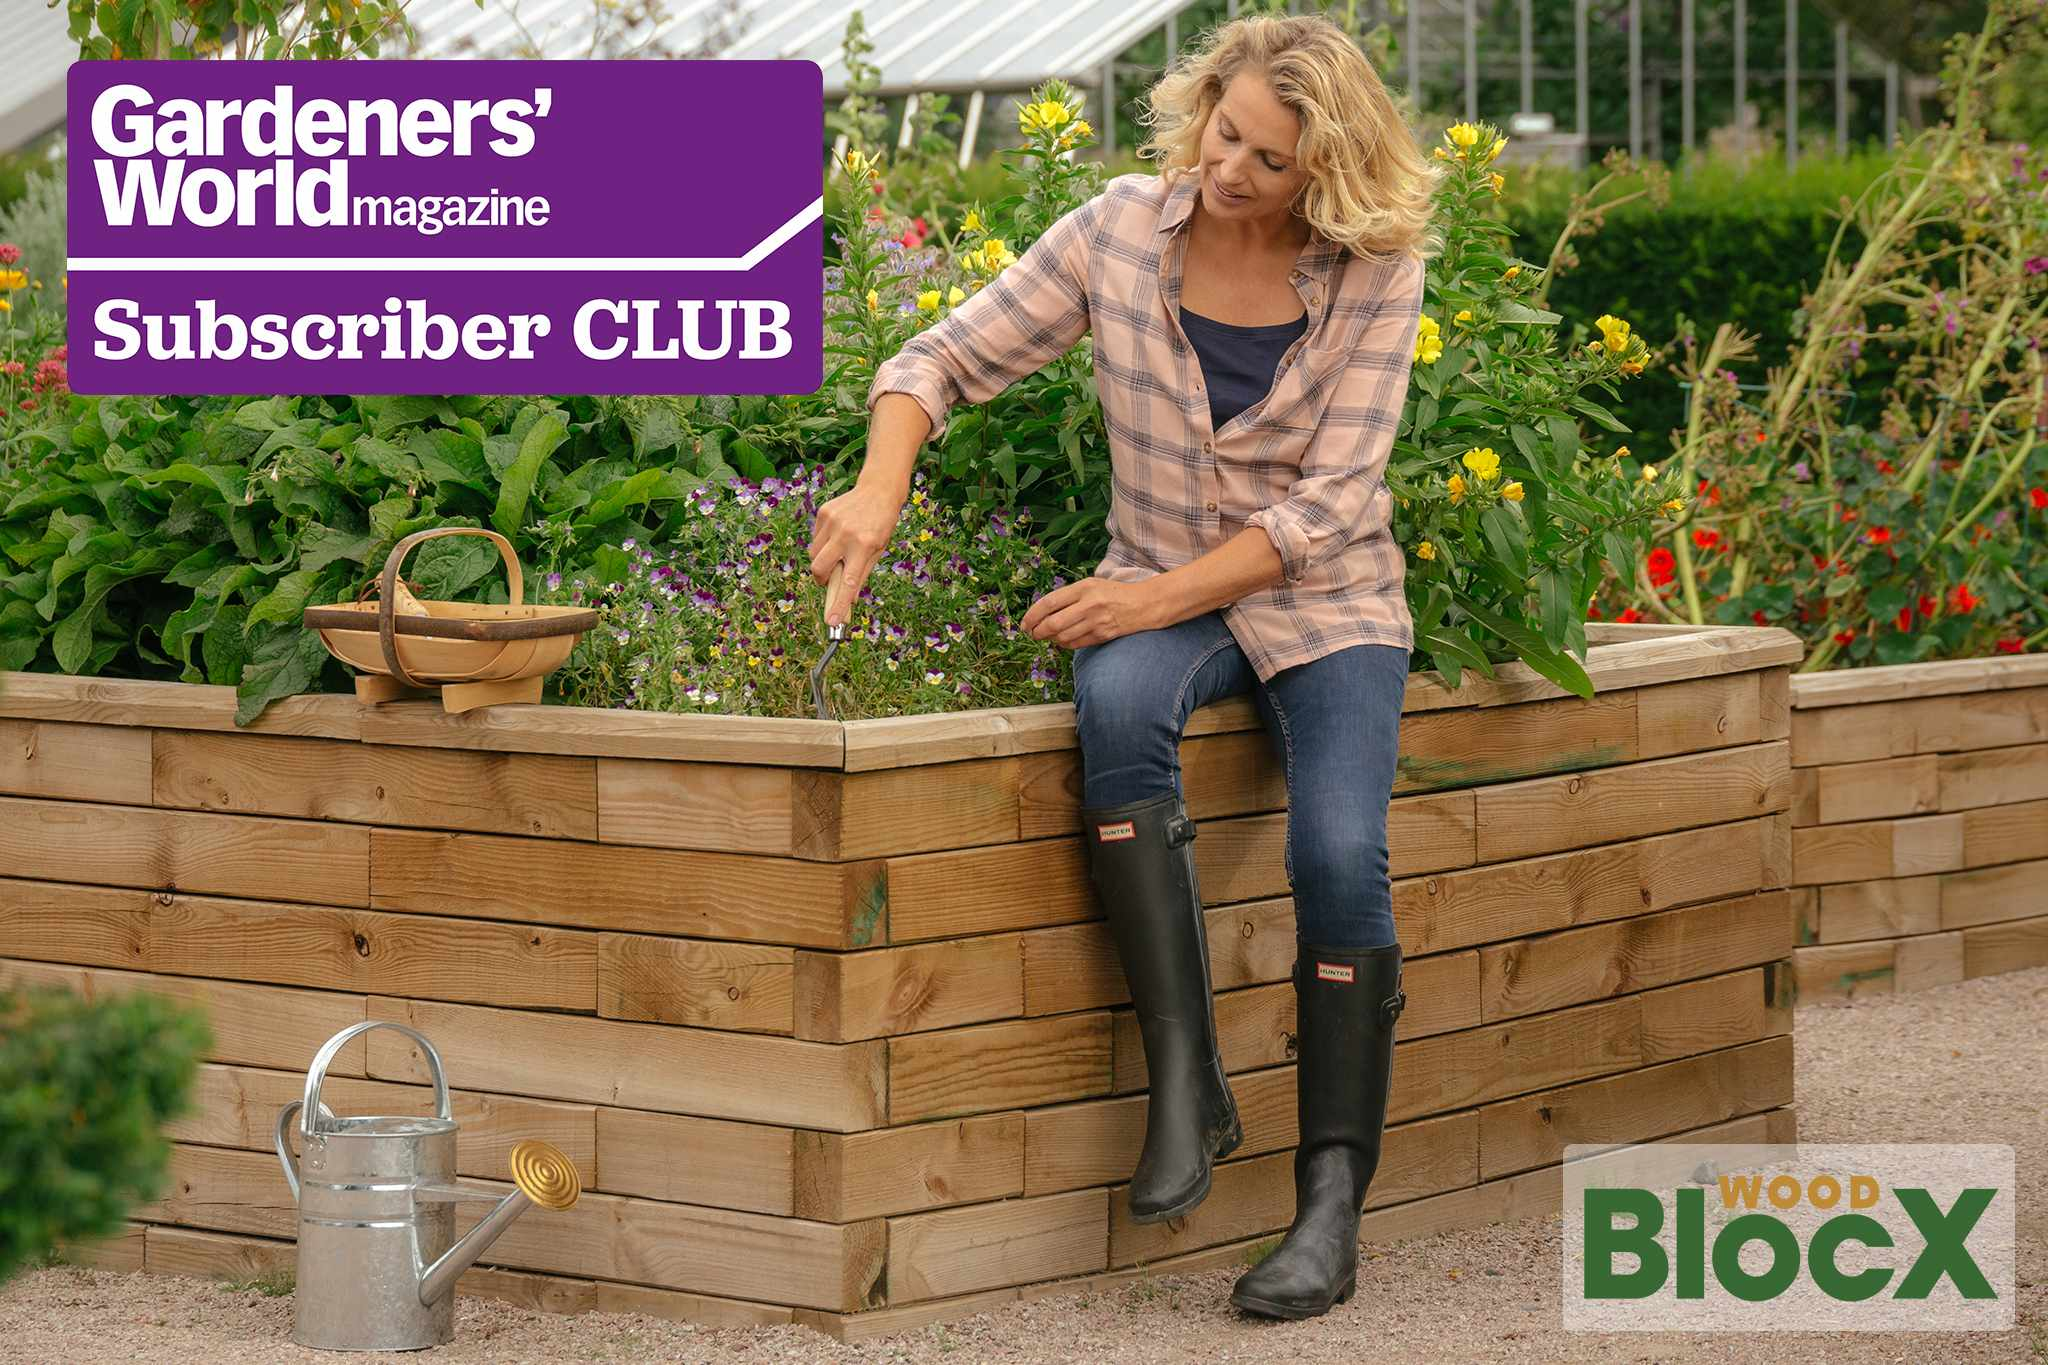 Subscriber Club: Win a garden makeover worth £3,000 from WoodBlocX